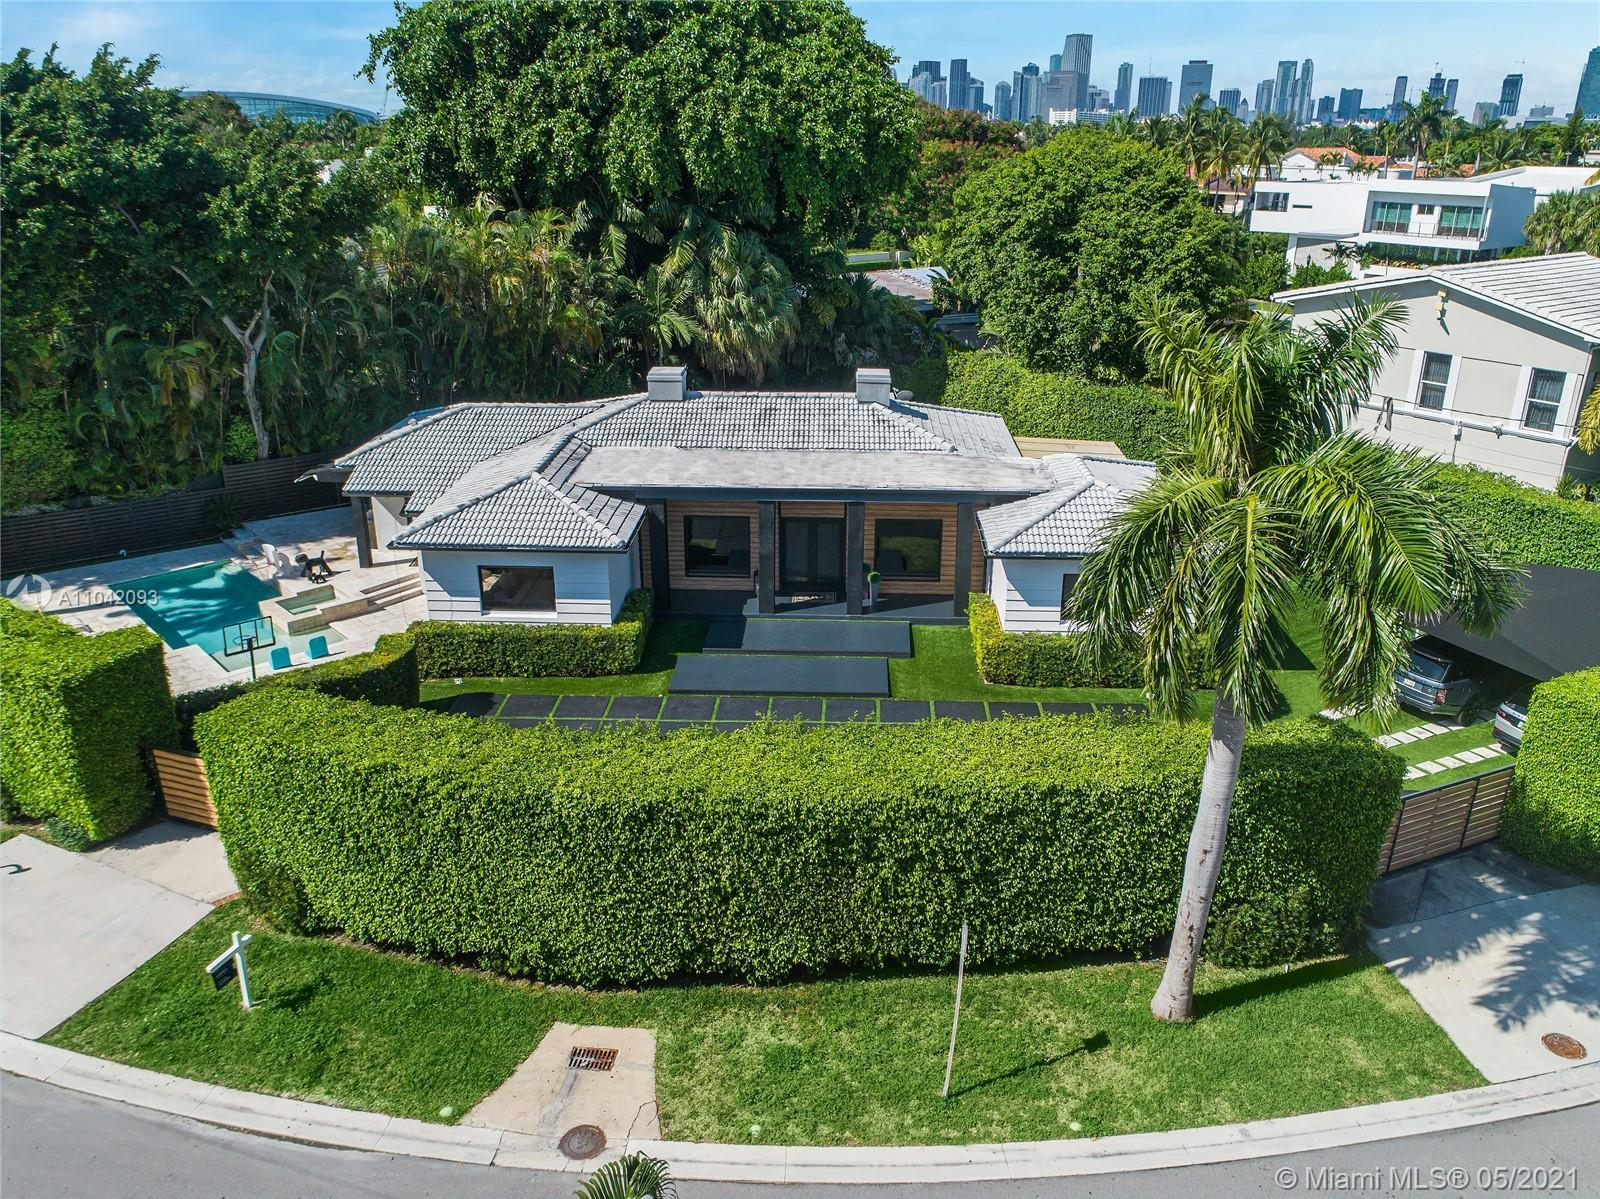 Rare Opportunity on oversized lot in Hibiscus Island! Fully renovated 4 bed/3.5 bath contemporary ho